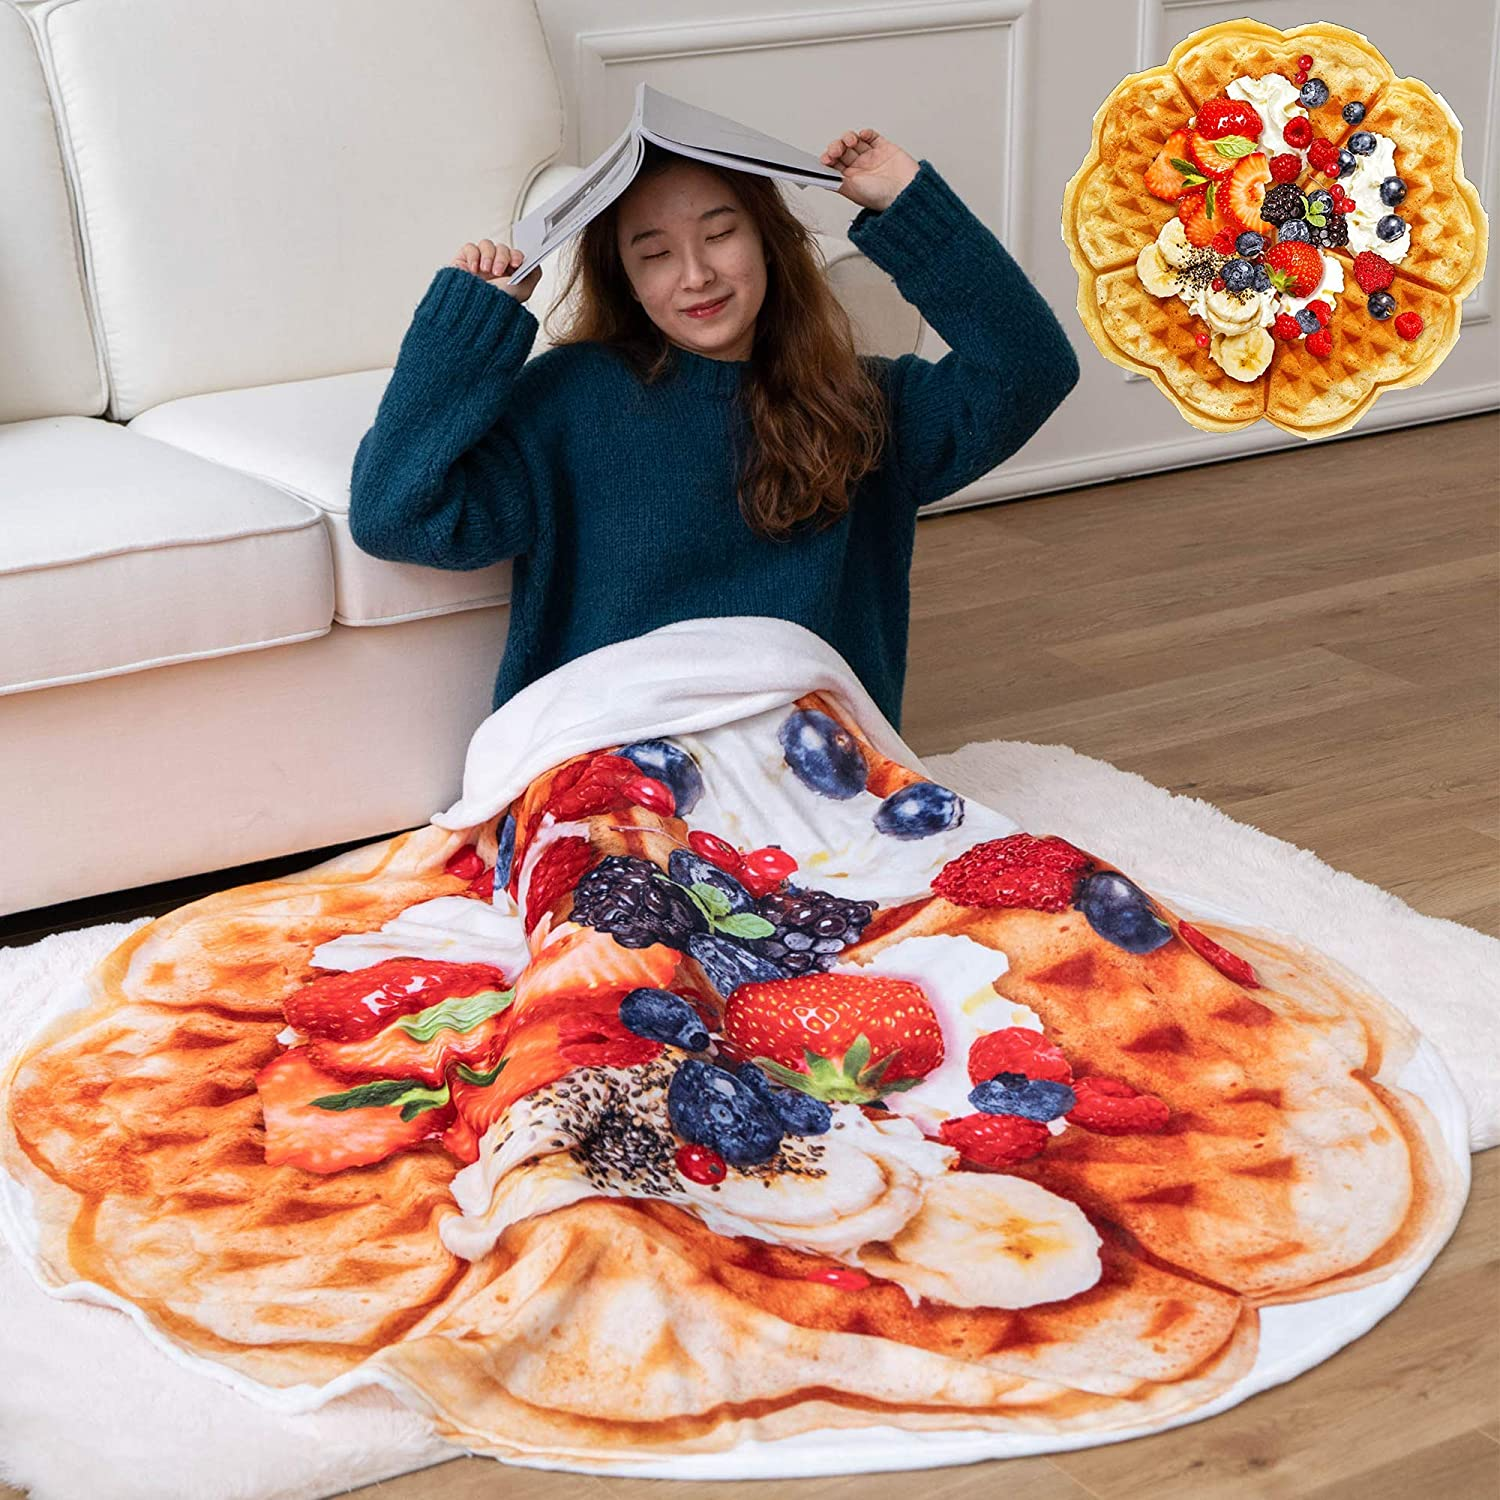 OLIVE HOME Fruit Waffle Food Throw Blanket 3D Print Soft Flannel Winter Warm Round Blankets Decorative Blankets For Bed Sofa